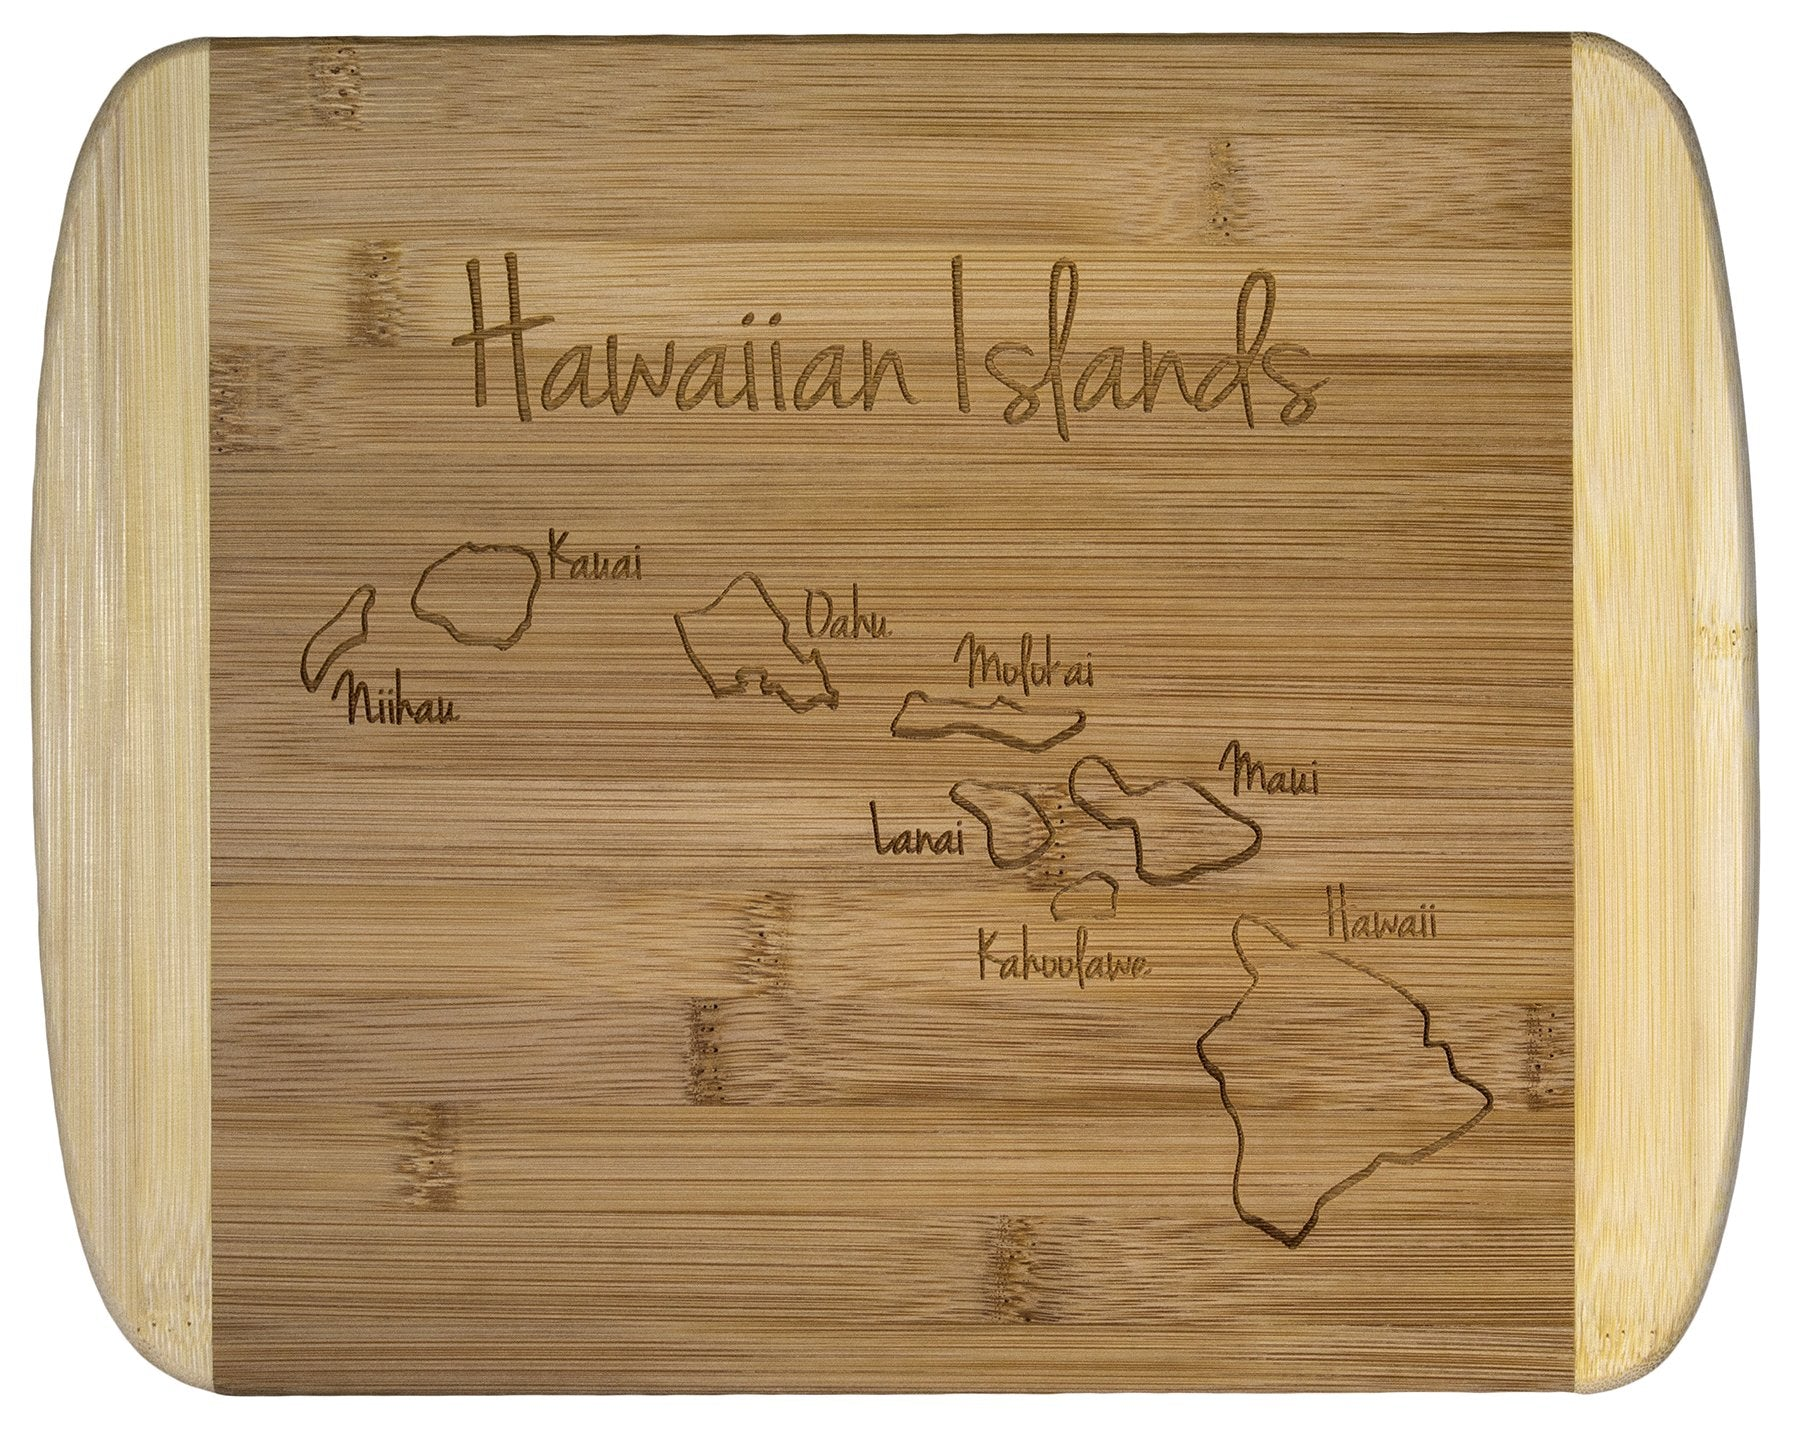 Totally Bamboo 11 2-Tone Board Hawaiian Islands